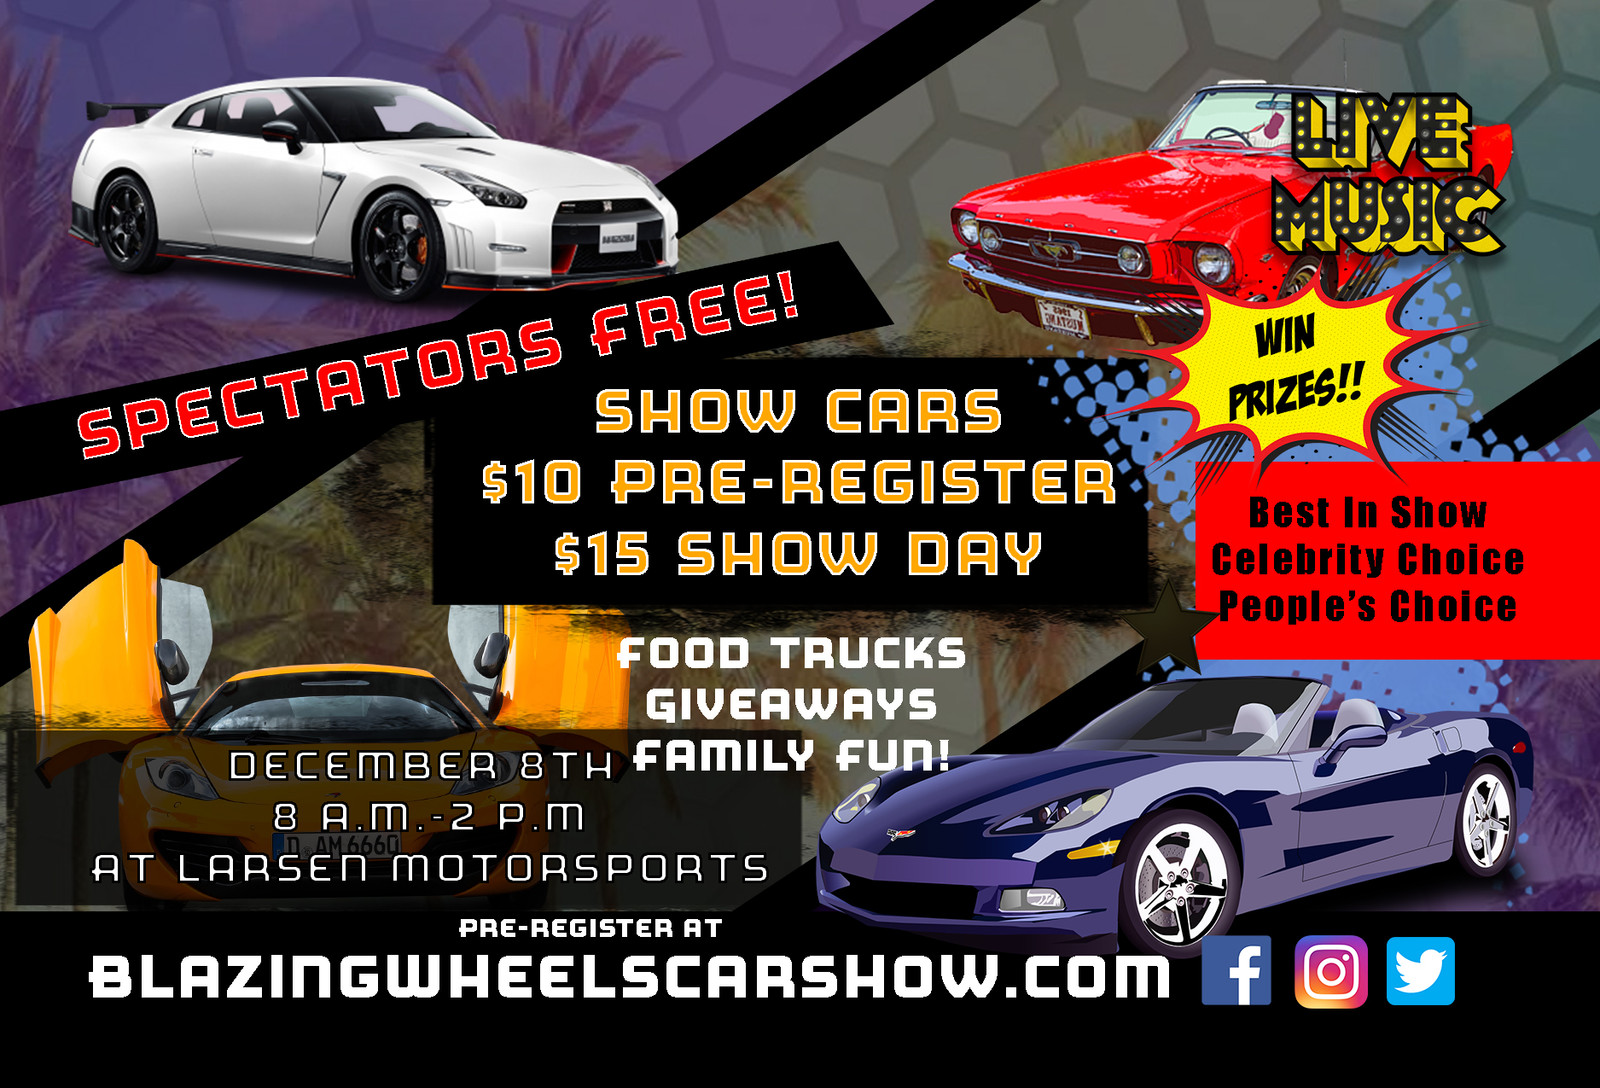 Blazing Wheels Car Show Larsen Motorsports Florida Car Show - Car show giveaways